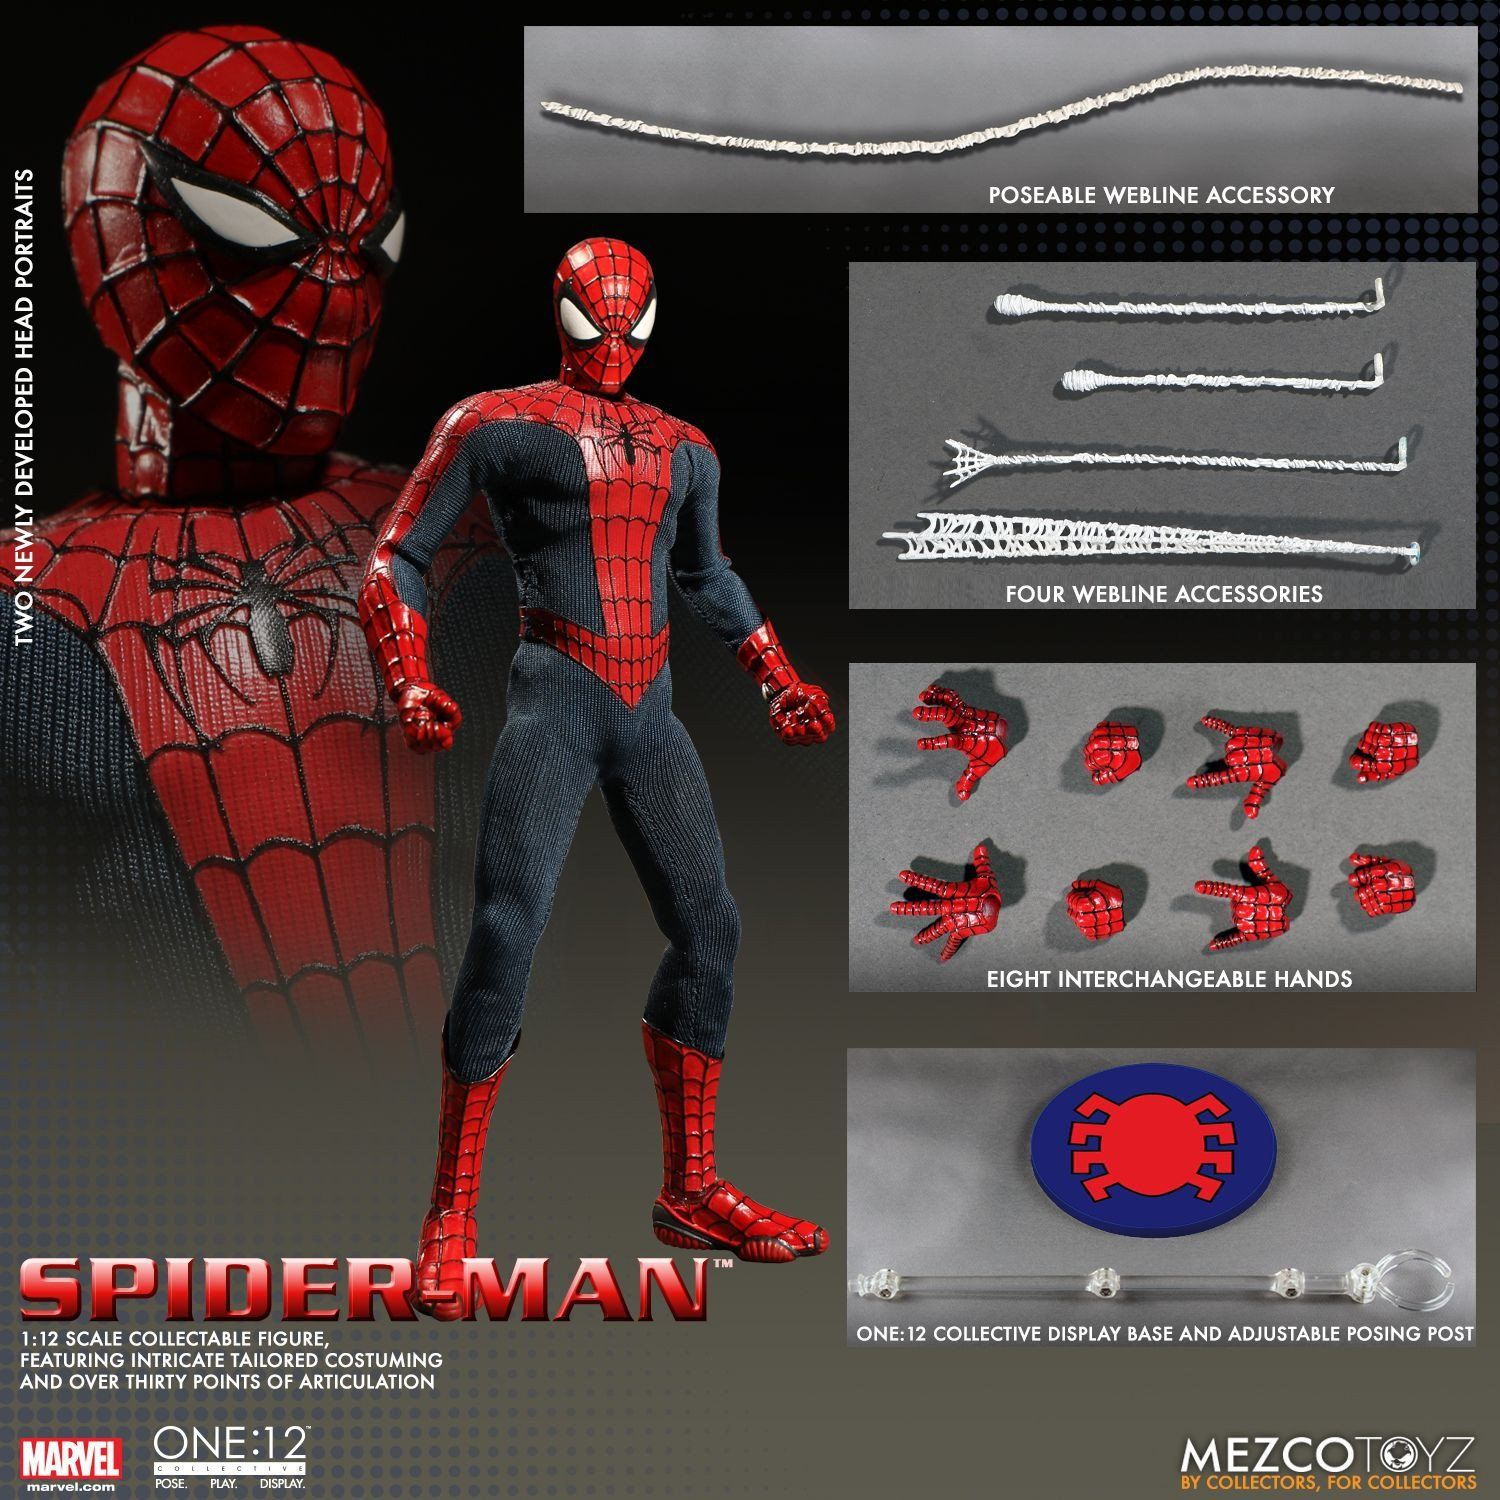 Mezco Marvel Avengers Spiderman Home Coming SPIDER MAN ACTION FIGURE One:12